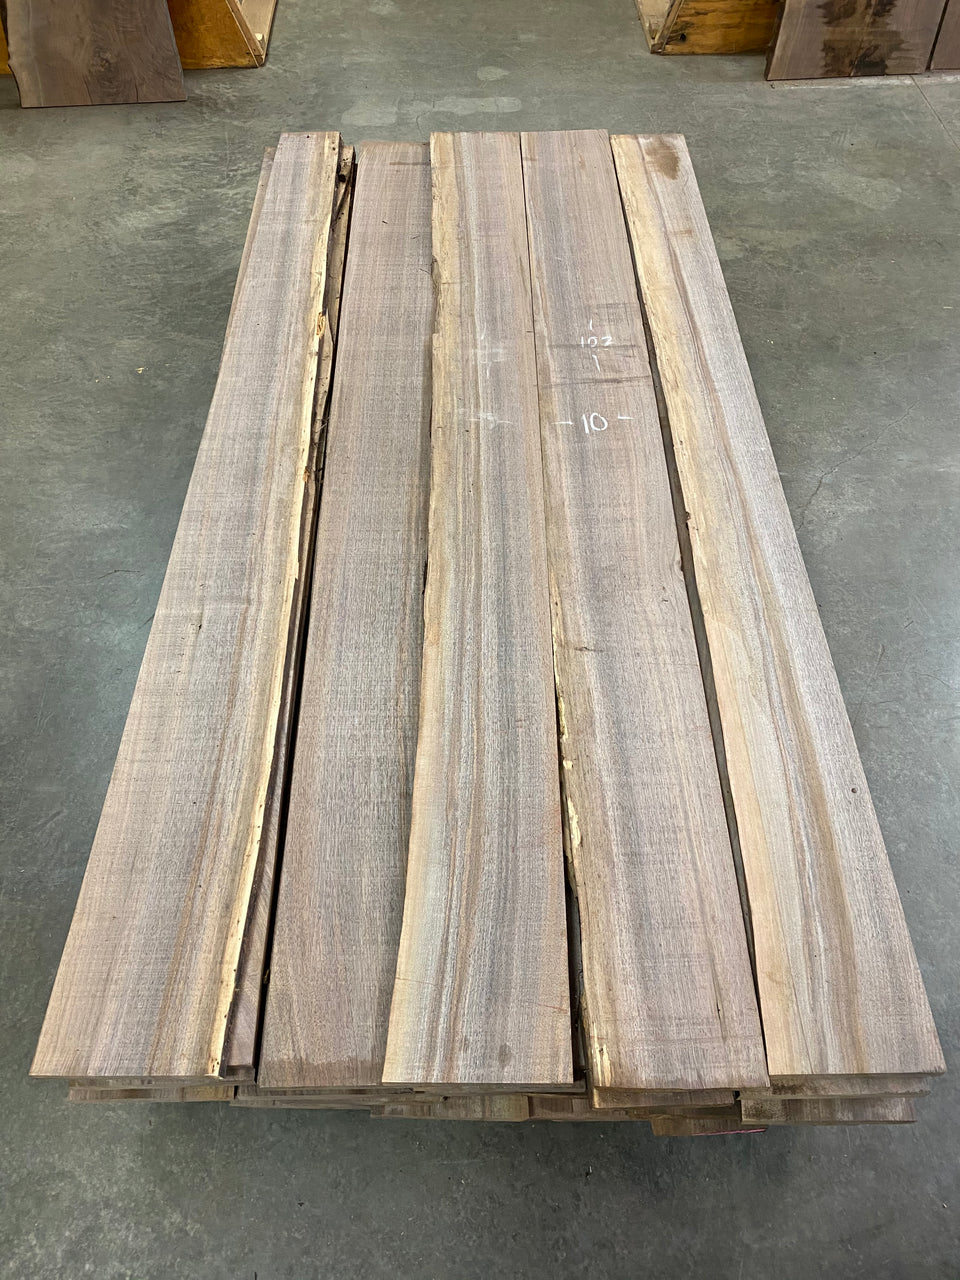 4/4 Clear Oregon Black Walnut